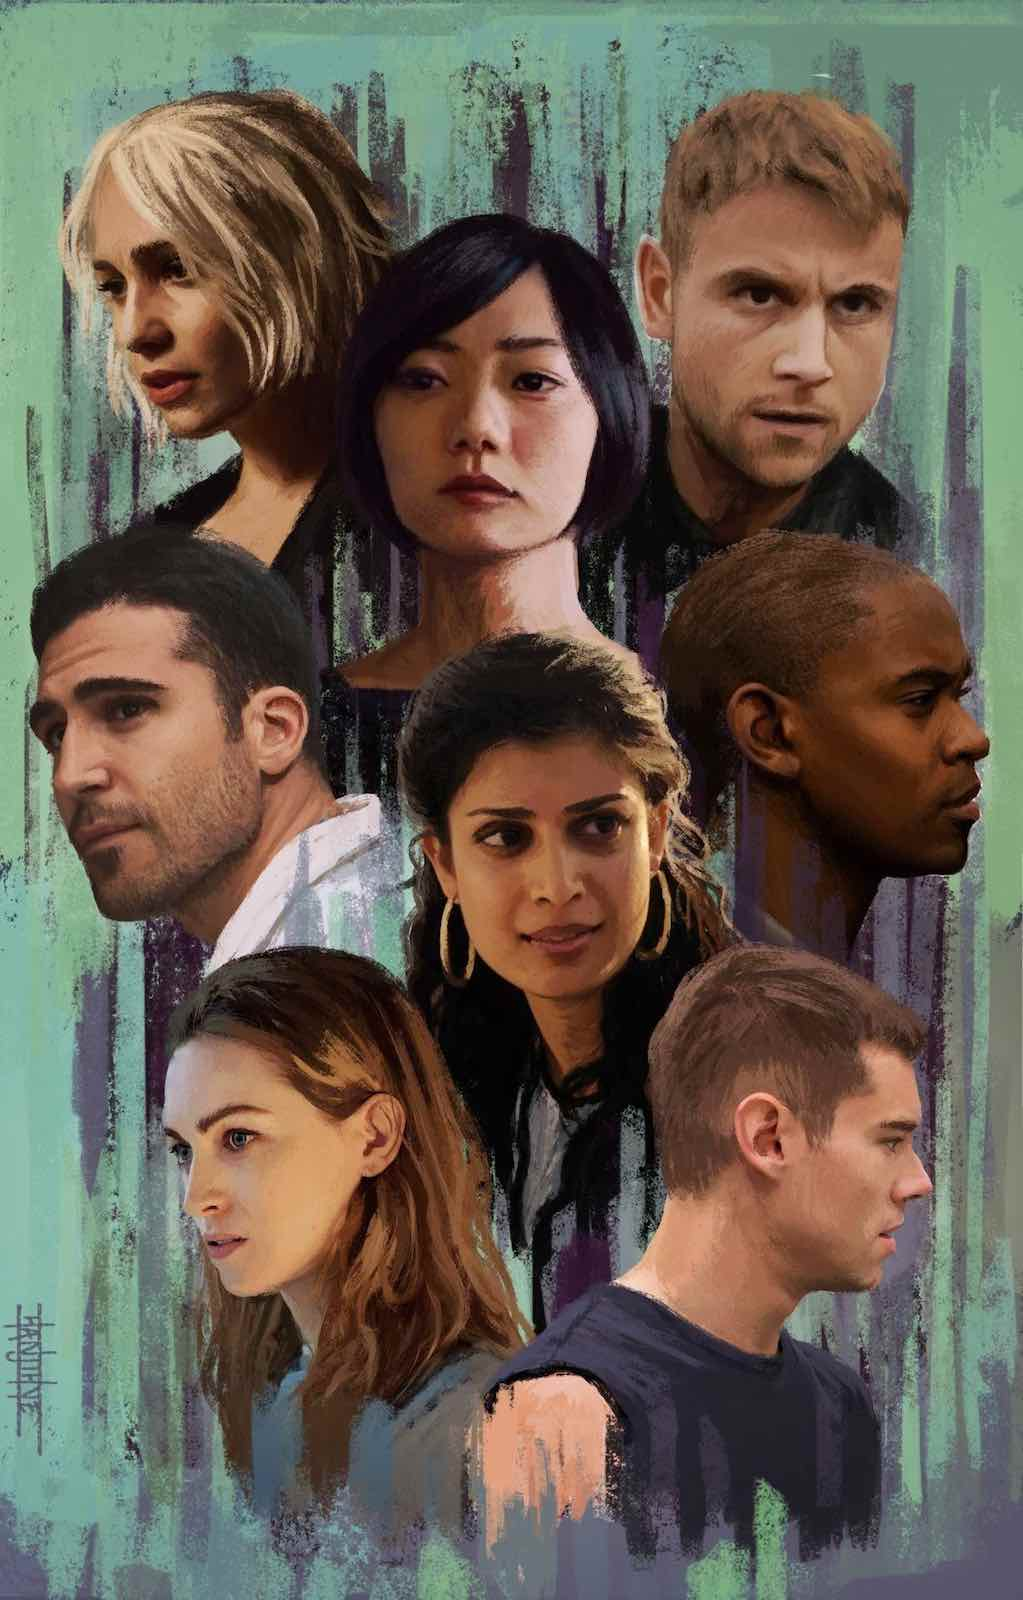 Need a reminder of why 'Sense8' deserves Best Cancelled Sci-fi/Fantasy TV show in the Bingewatch Awards? Let's take a look at exactly why.